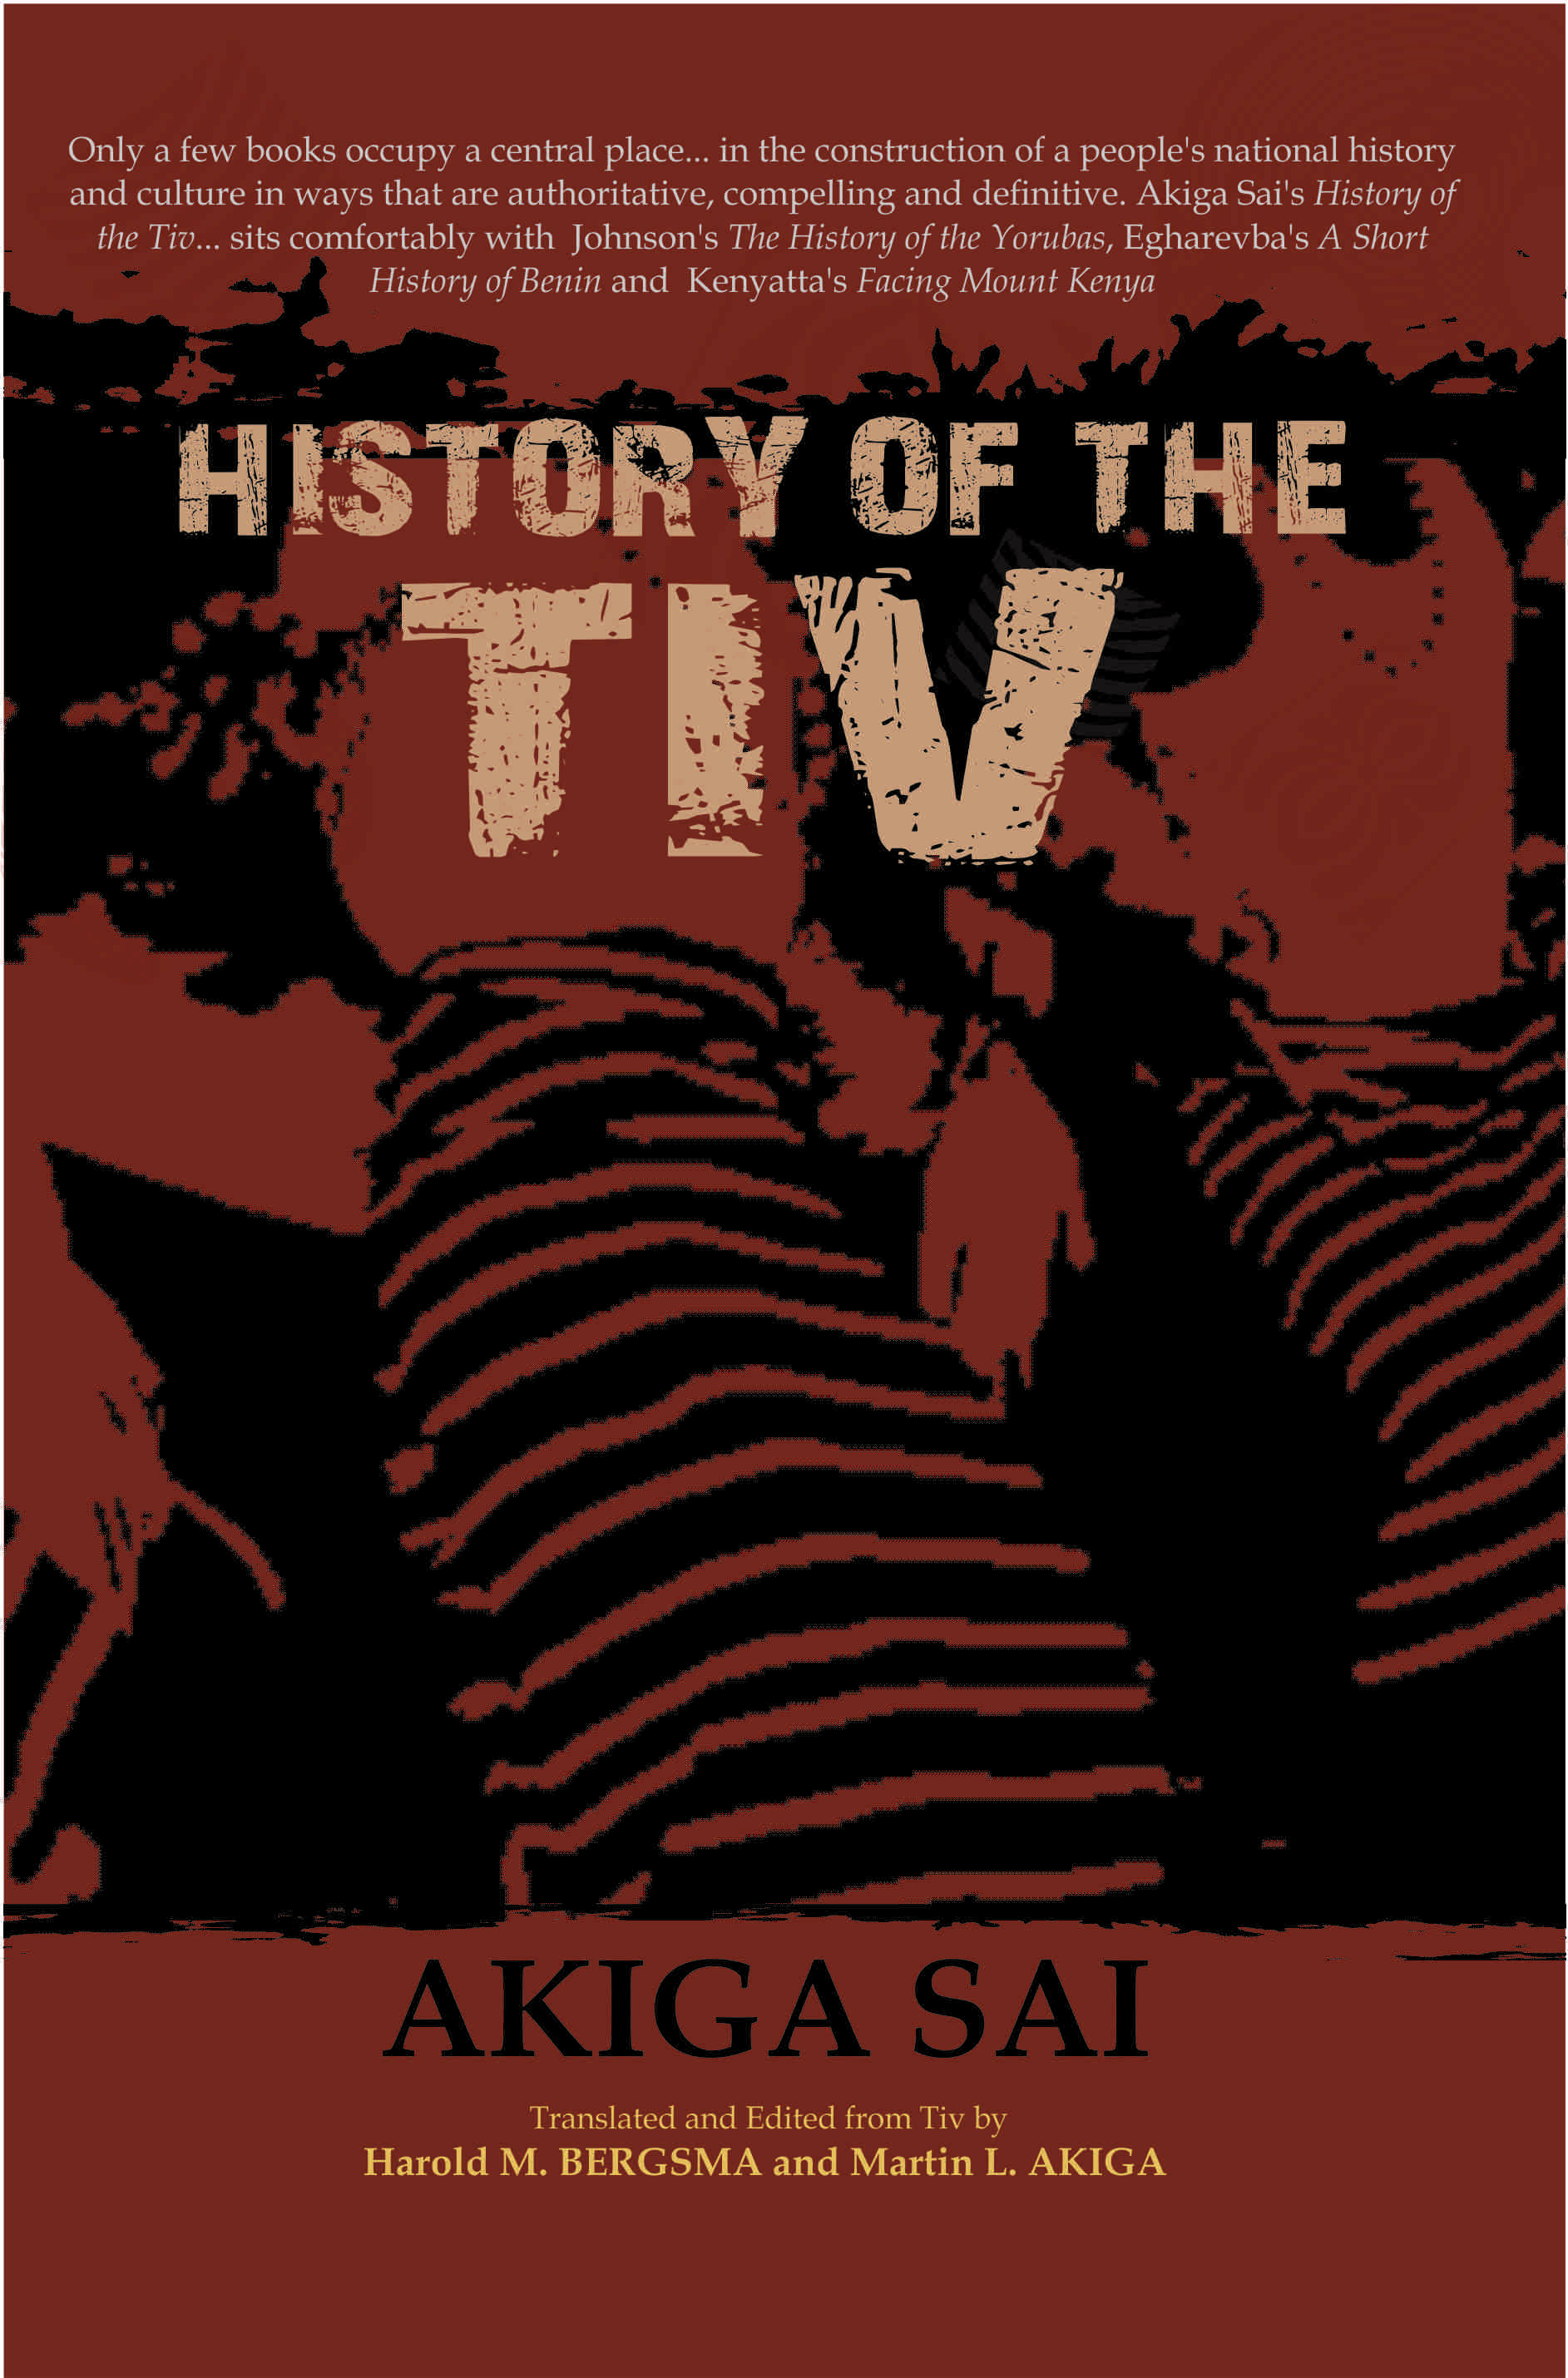 History of the Tiv